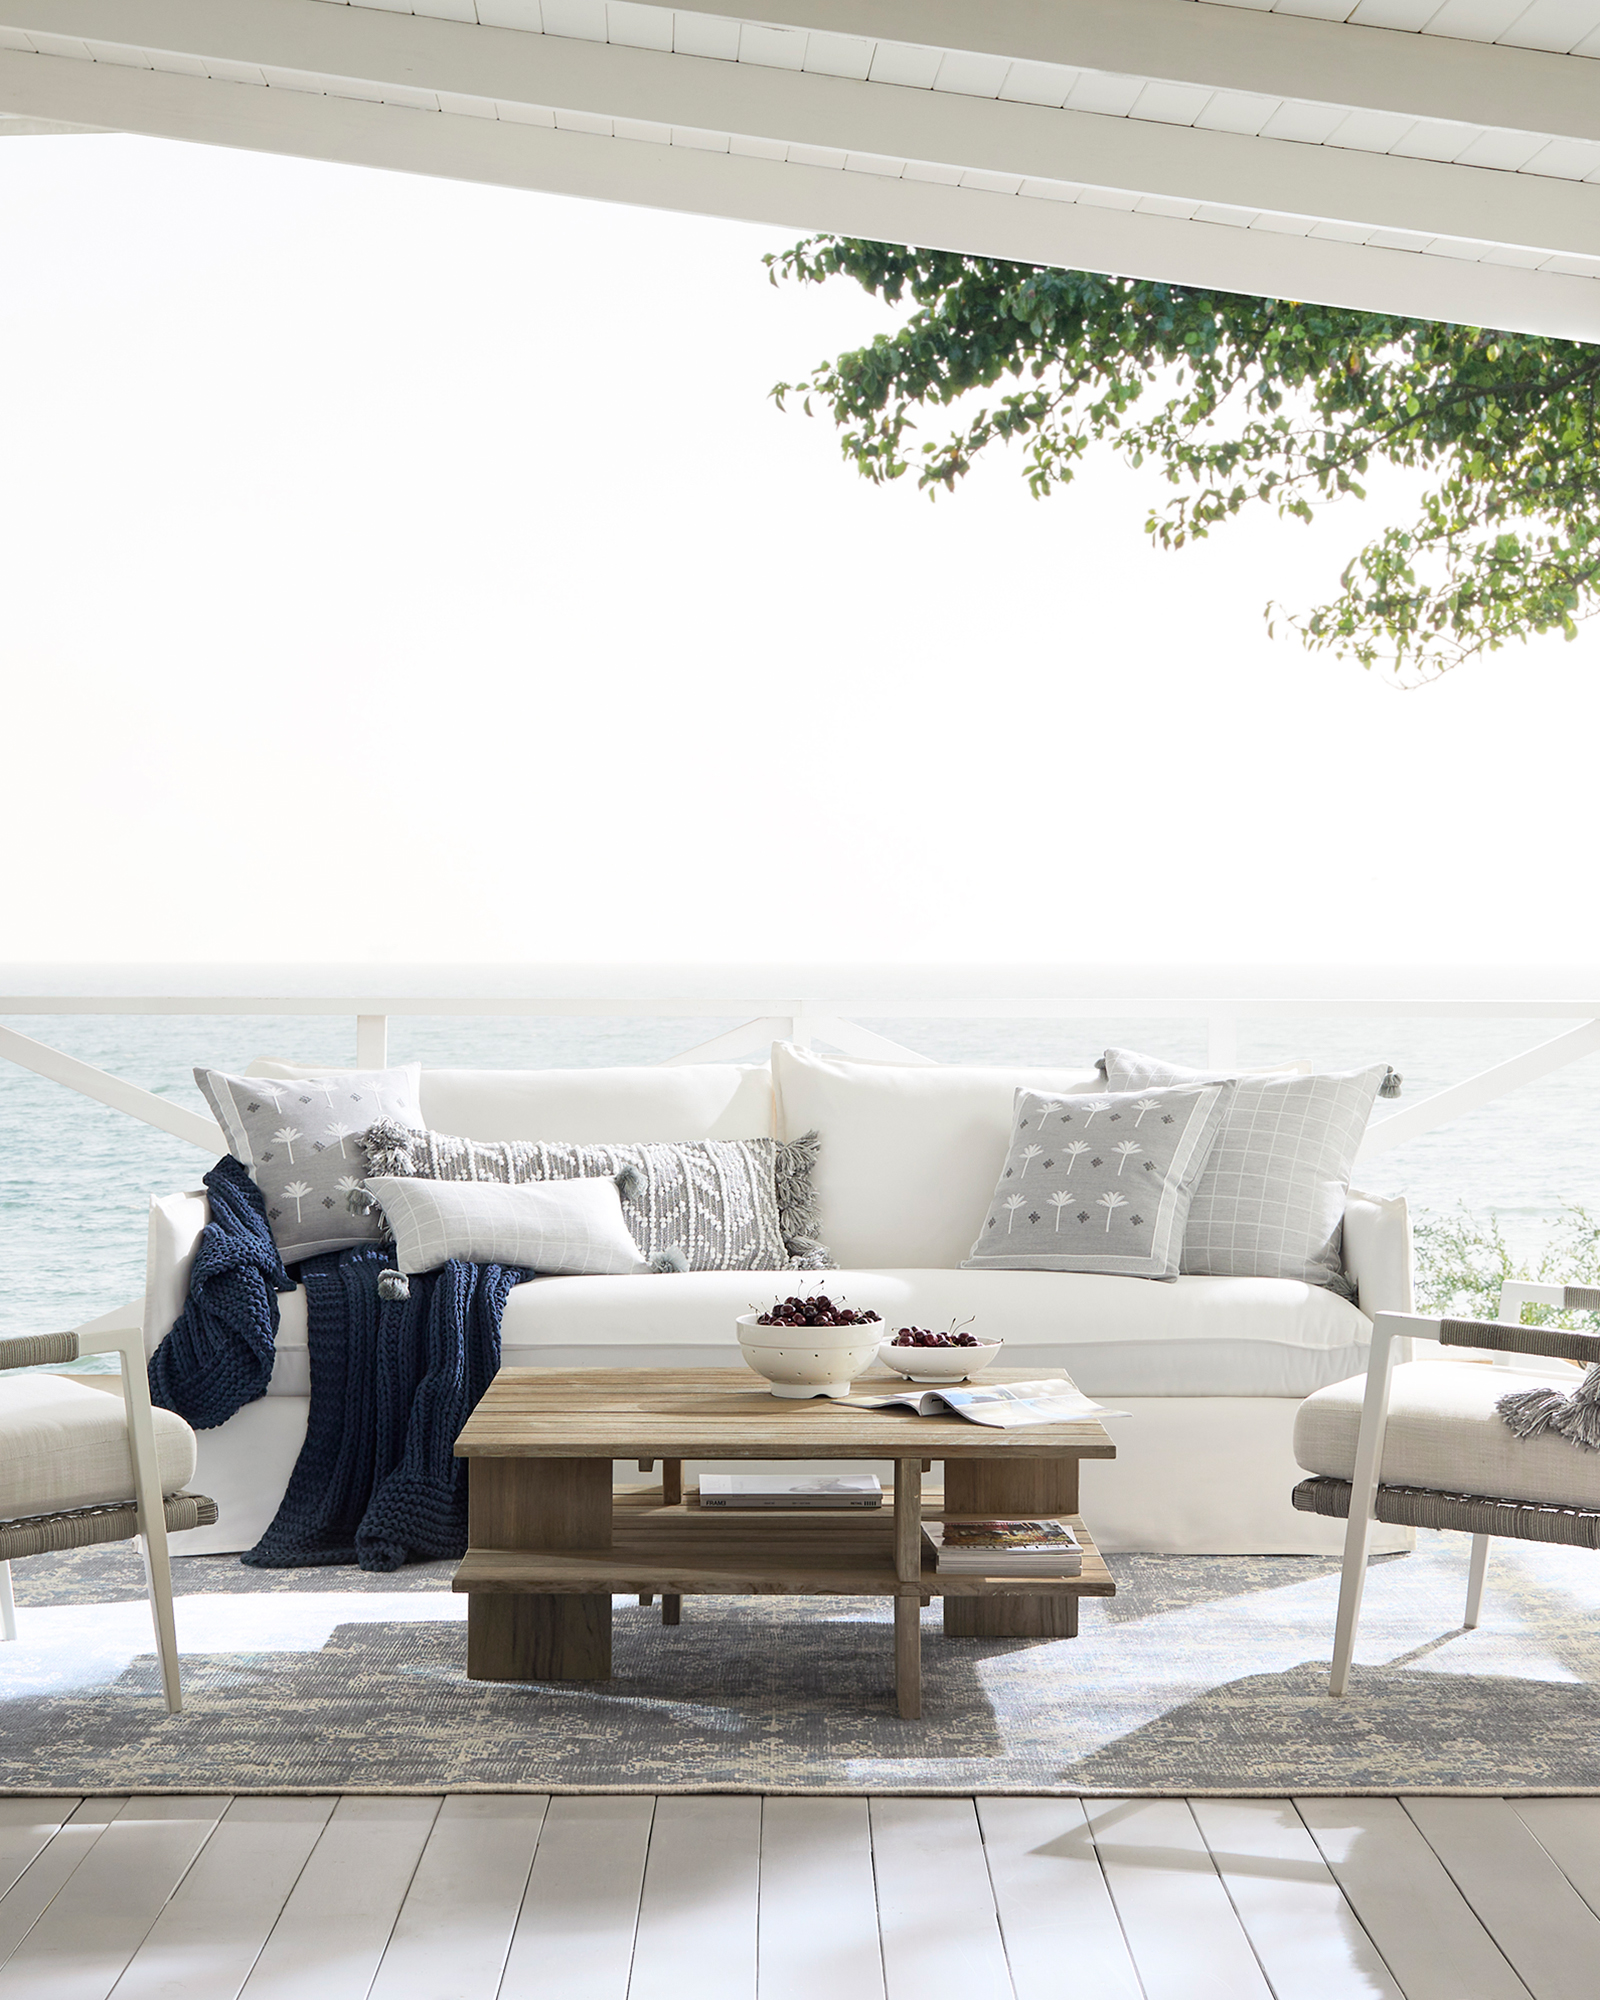 Sundial Outdoor Sofa with Bench Seat,